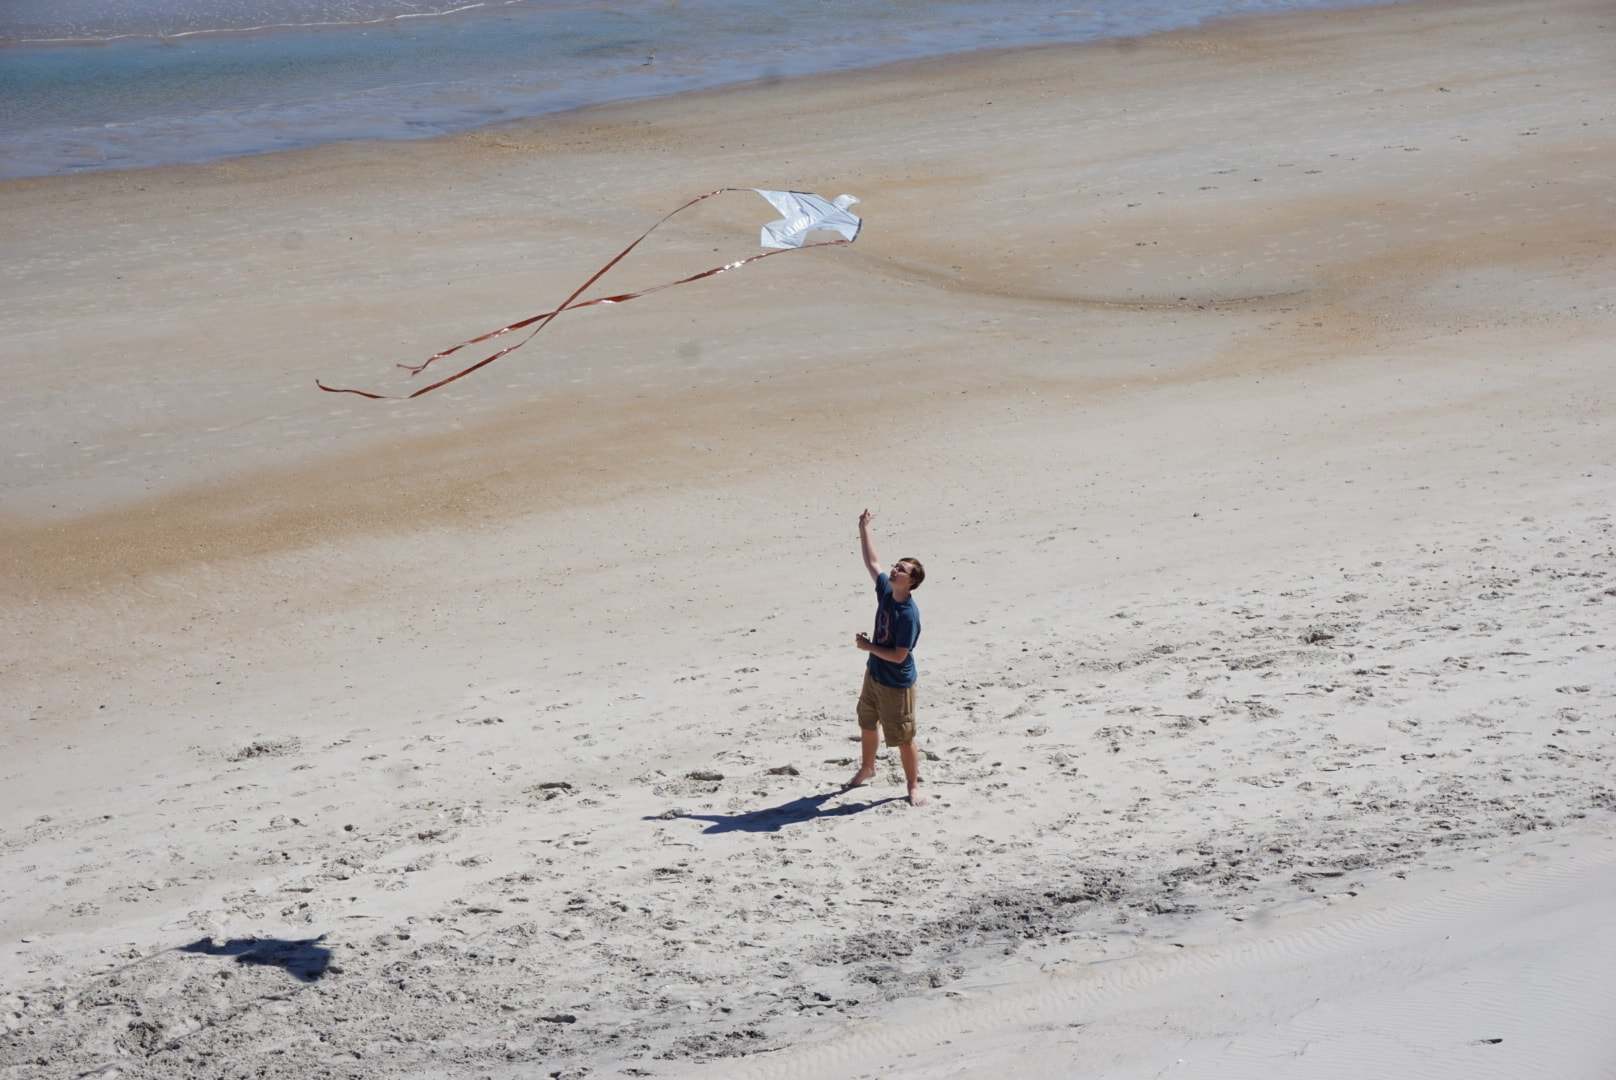 Jack flying a kite 1